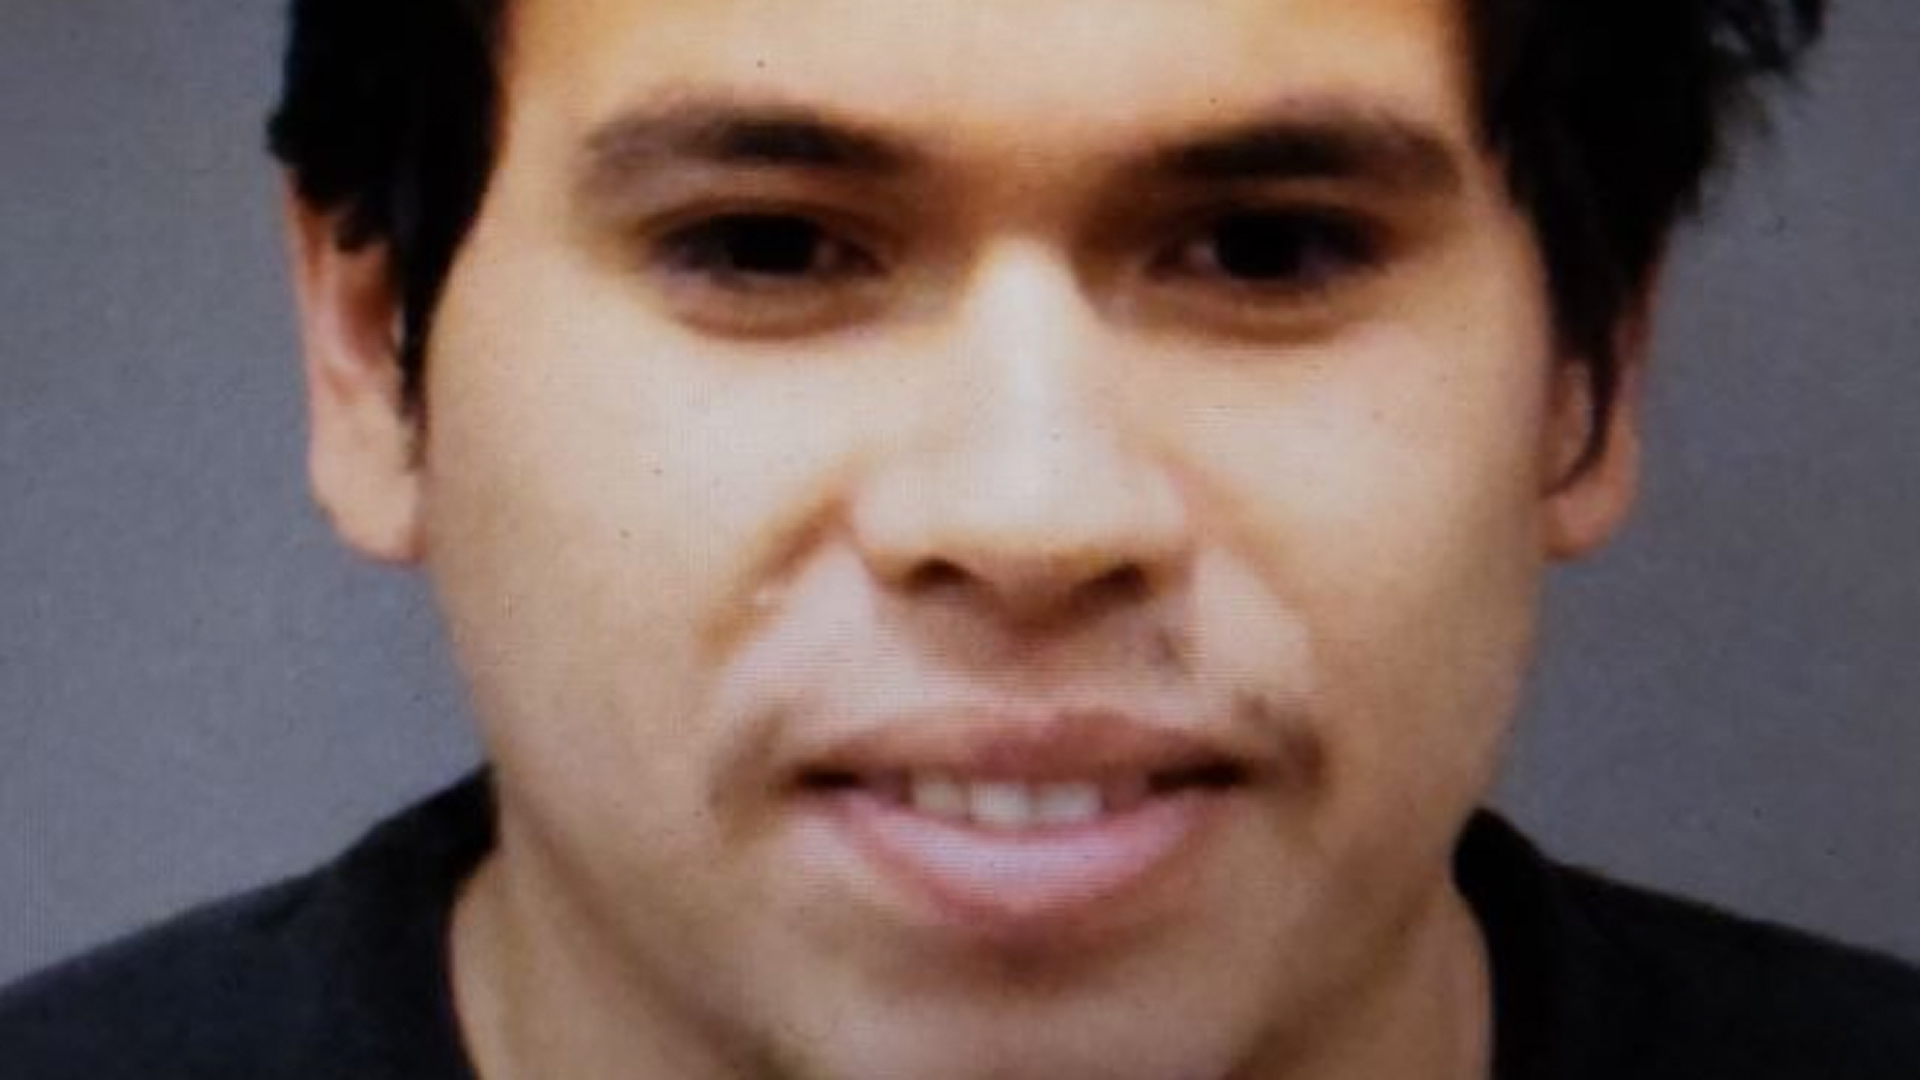 Victor Magana is seen in an image provided by the California Highway Patrol on Dec. 16, 2019.